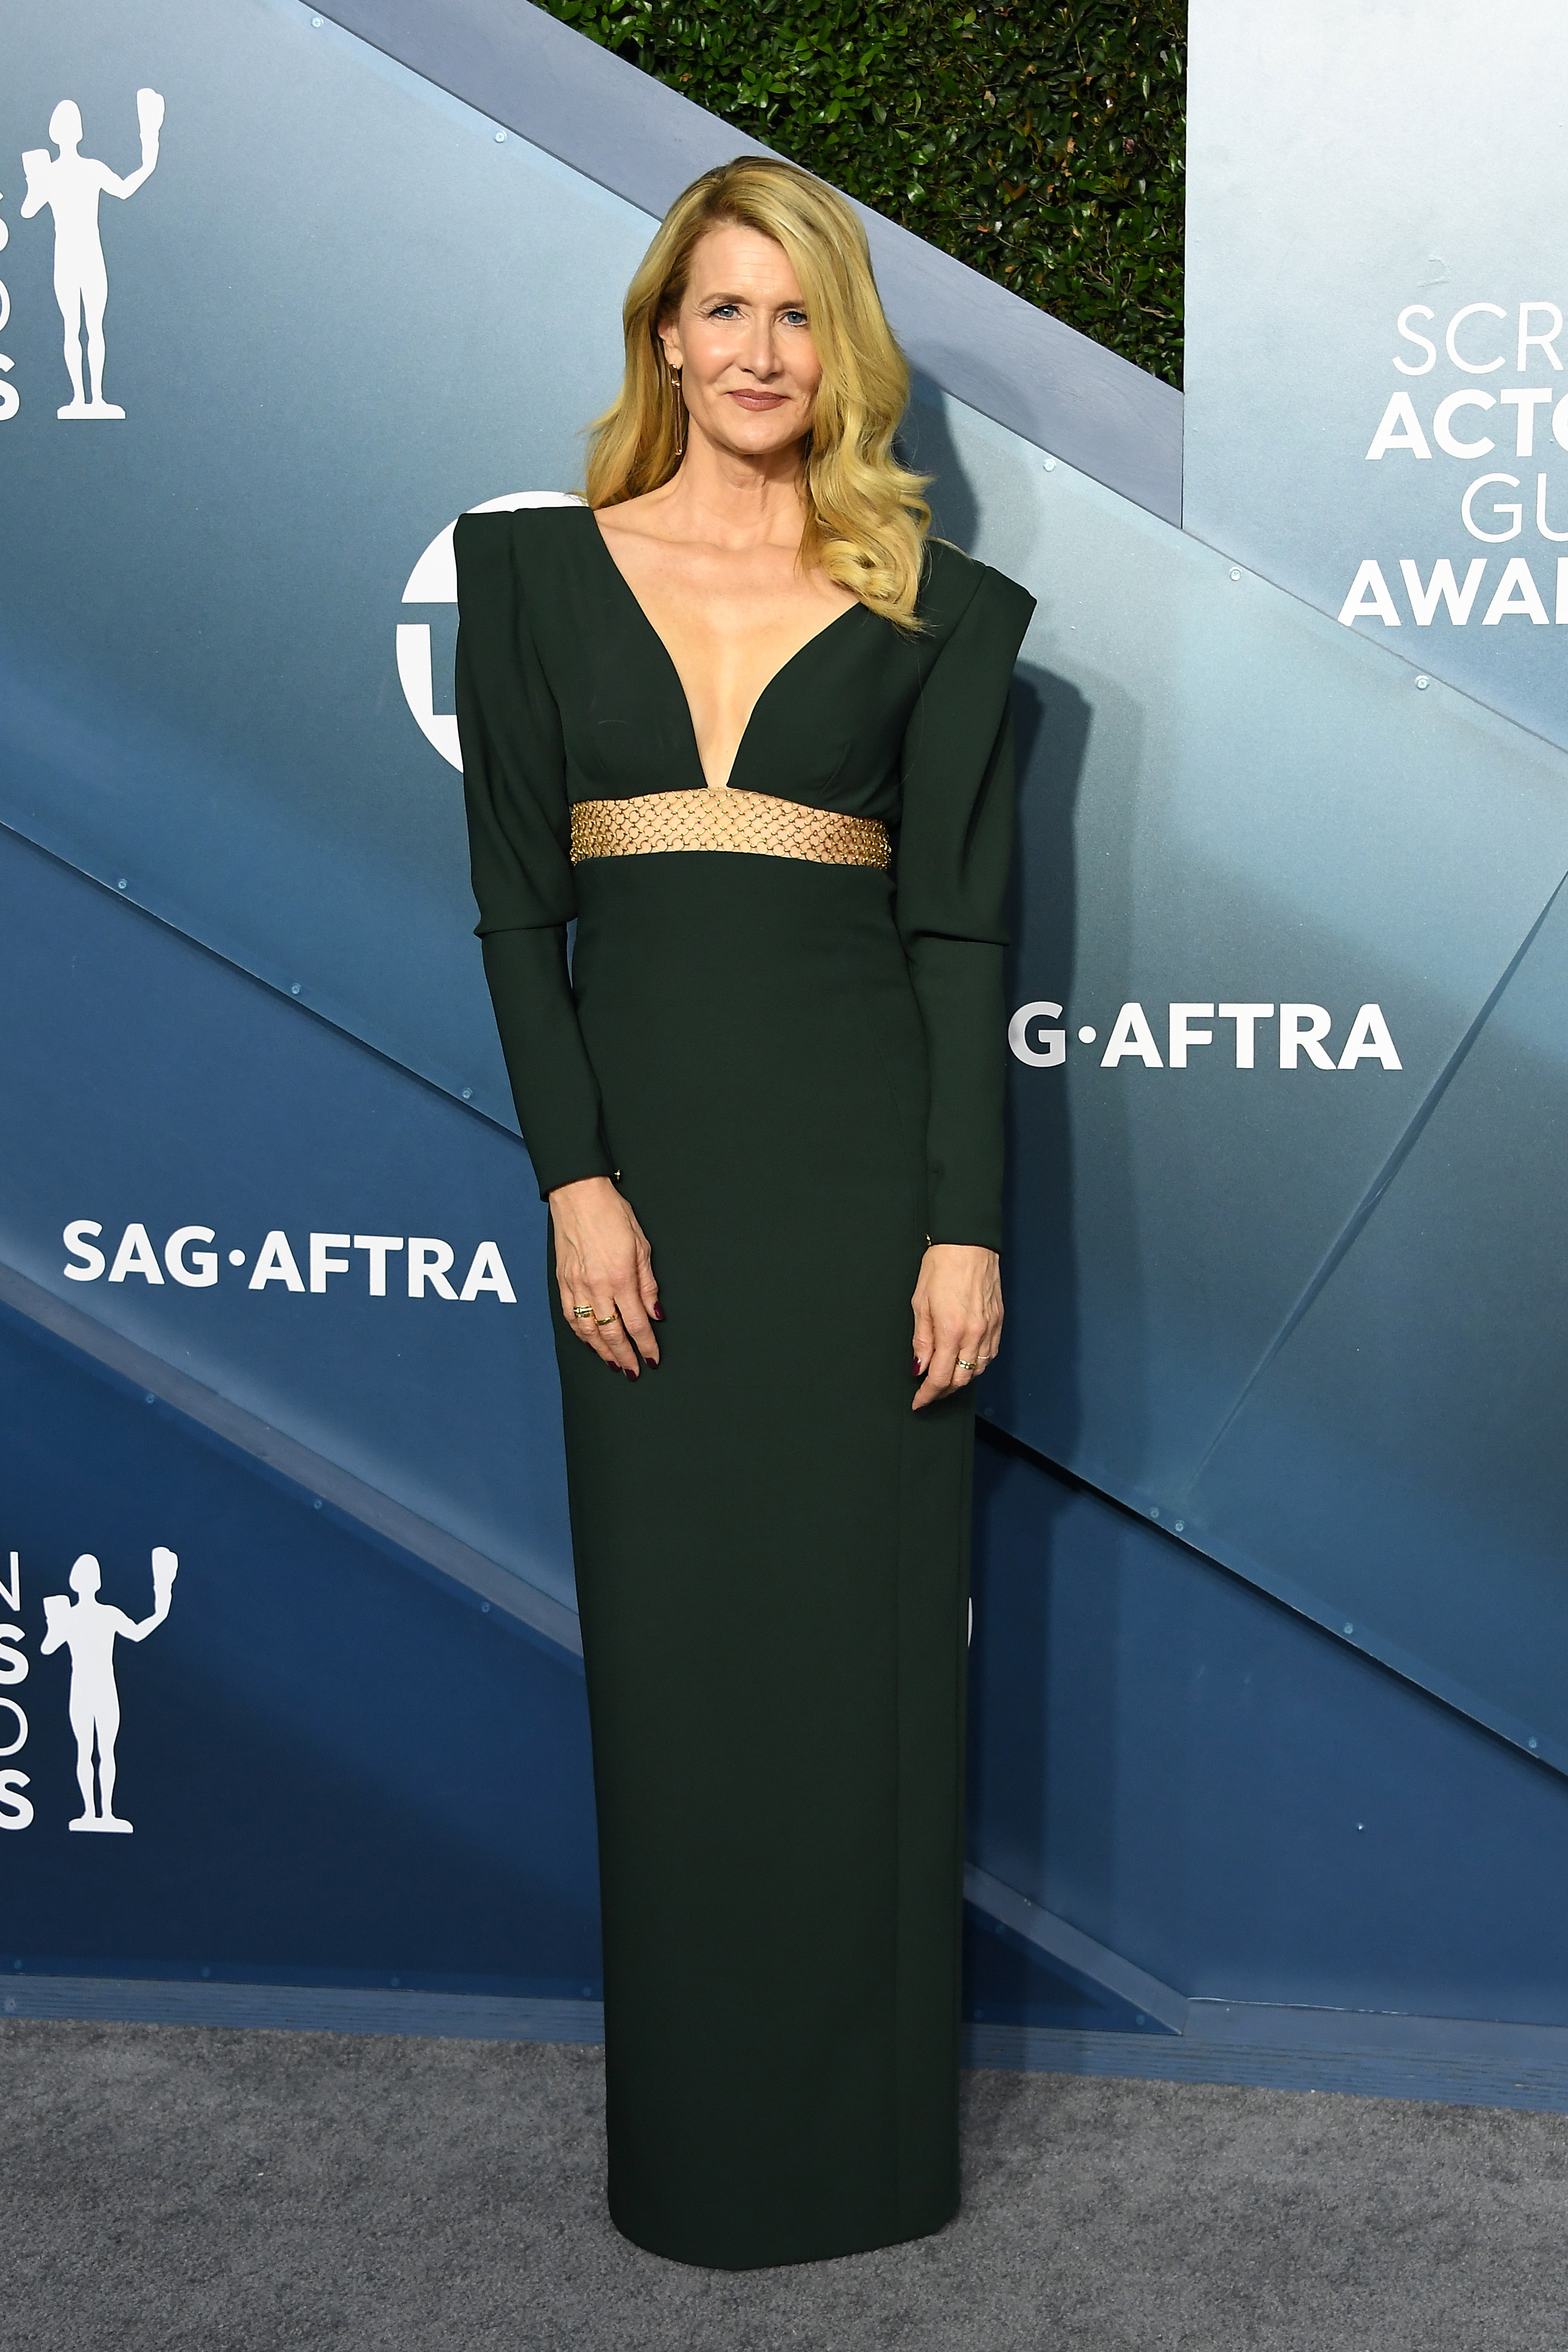 LOS ANGELES, CALIFORNIA - JANUARY 19: Laura Dern attends the 26th Annual Screen ActorsGuild Awards at The Shrine Auditorium on January 19, 2020 in Los Angeles, California. (Photo by Steve Granitz/WireImage)